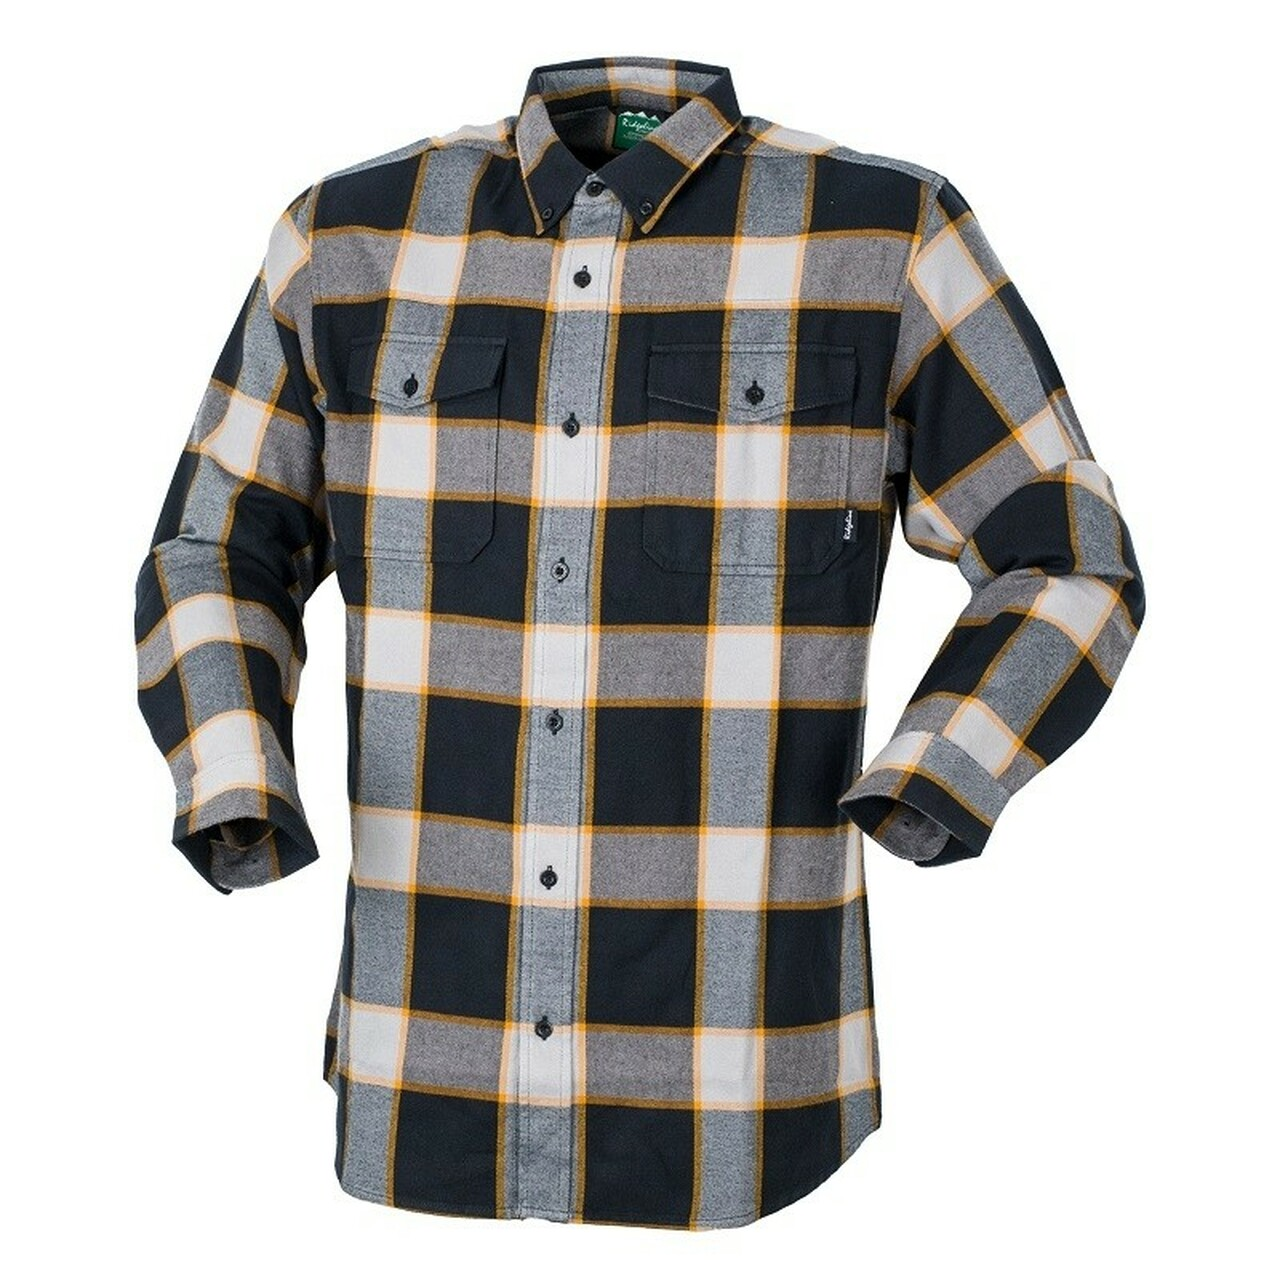 Ridgeline Backcountry Checked Shirt Yellow and Black 2XL at Bowral Coop